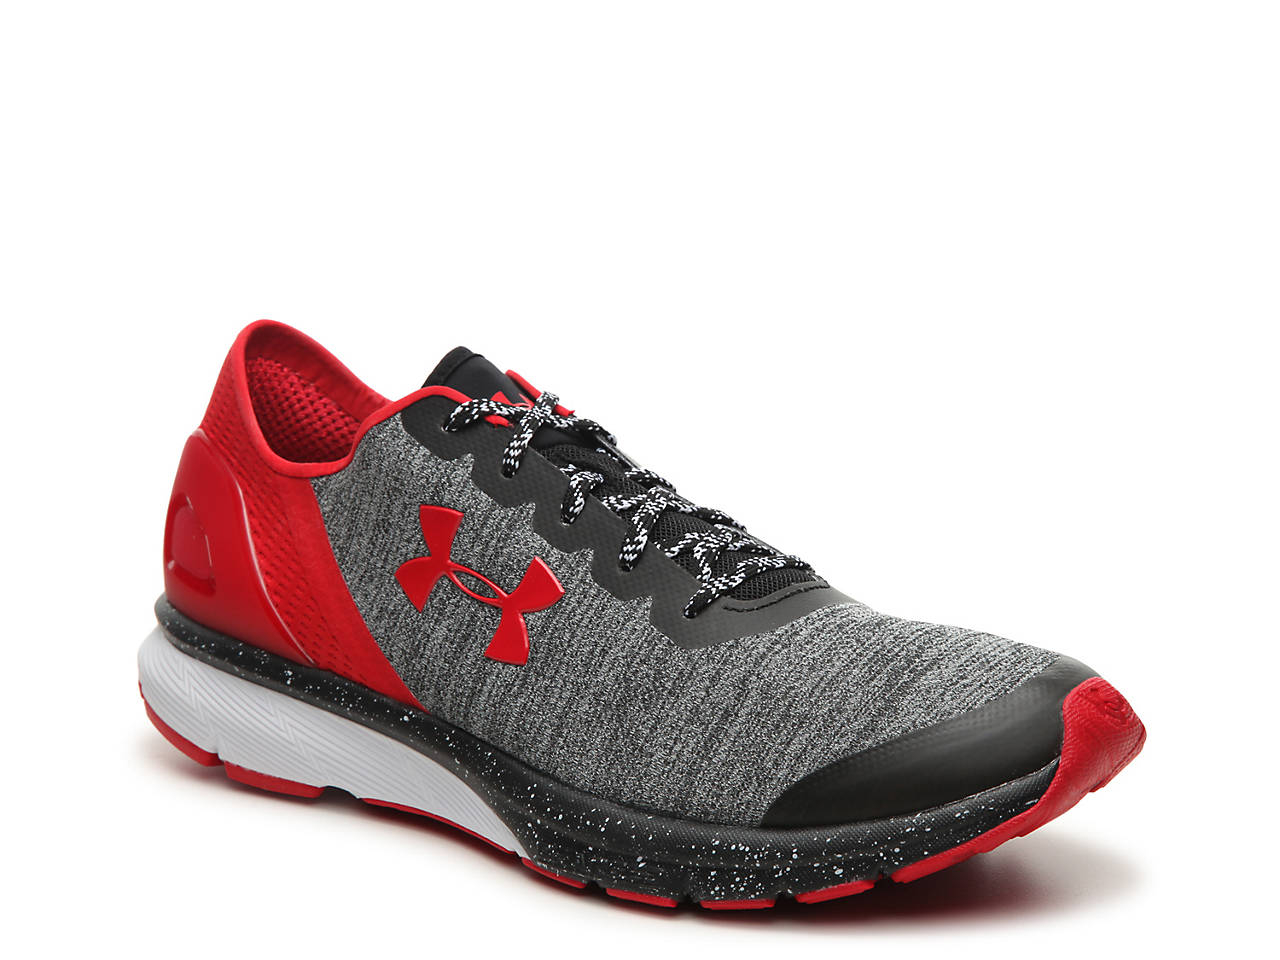 Under Armour Charged Escape Shoes Review